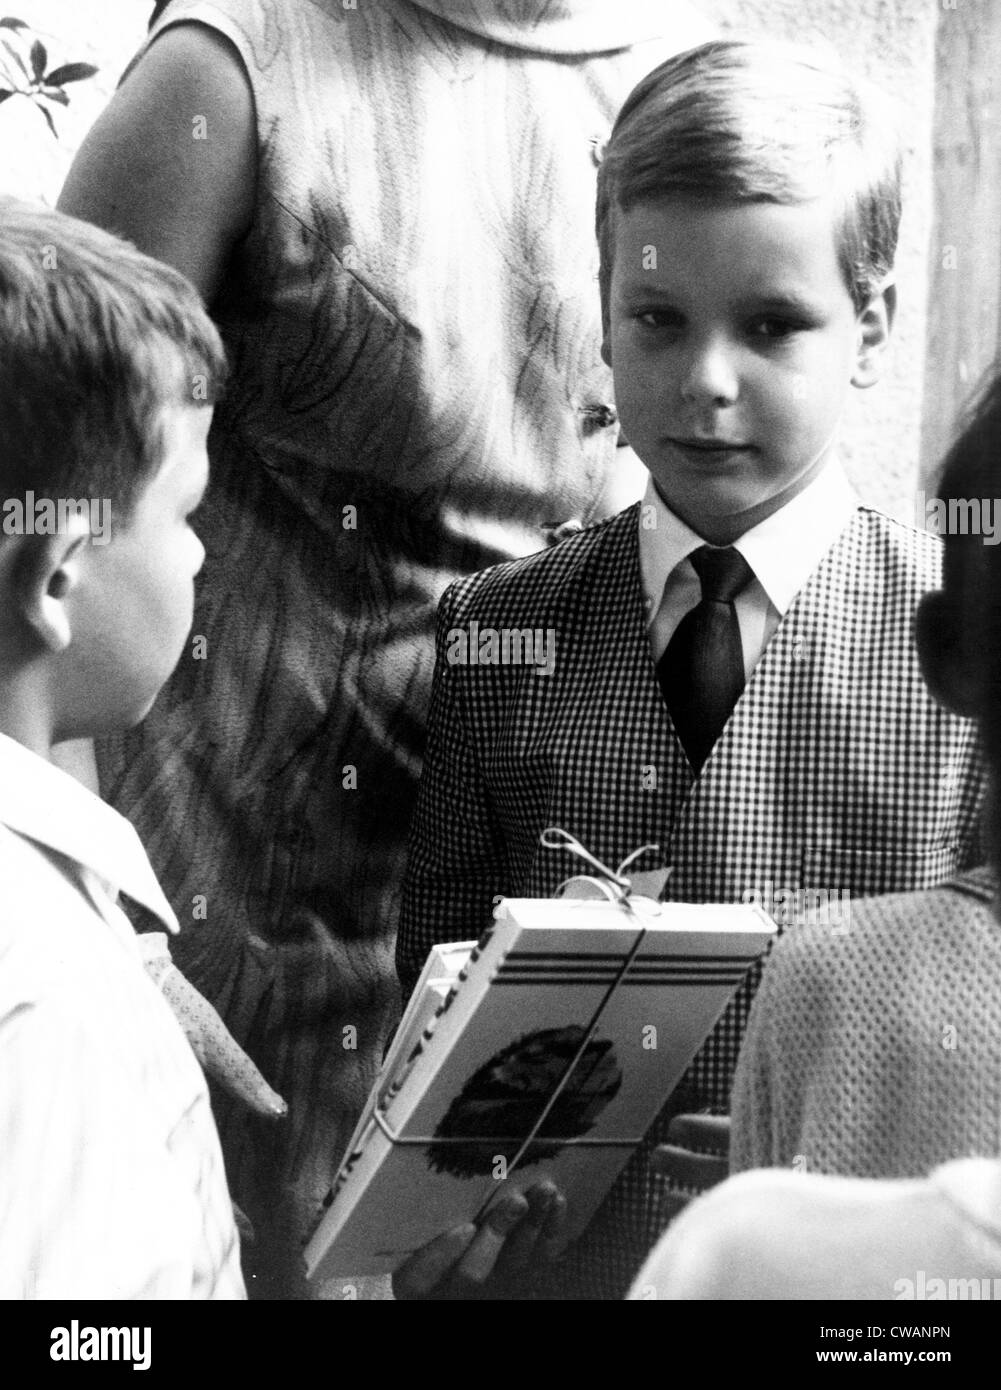 Prince Albert, heir apparent to the Monaco throne, 1967. Courtesy: CSU Archives / Everett Collection - Stock Image